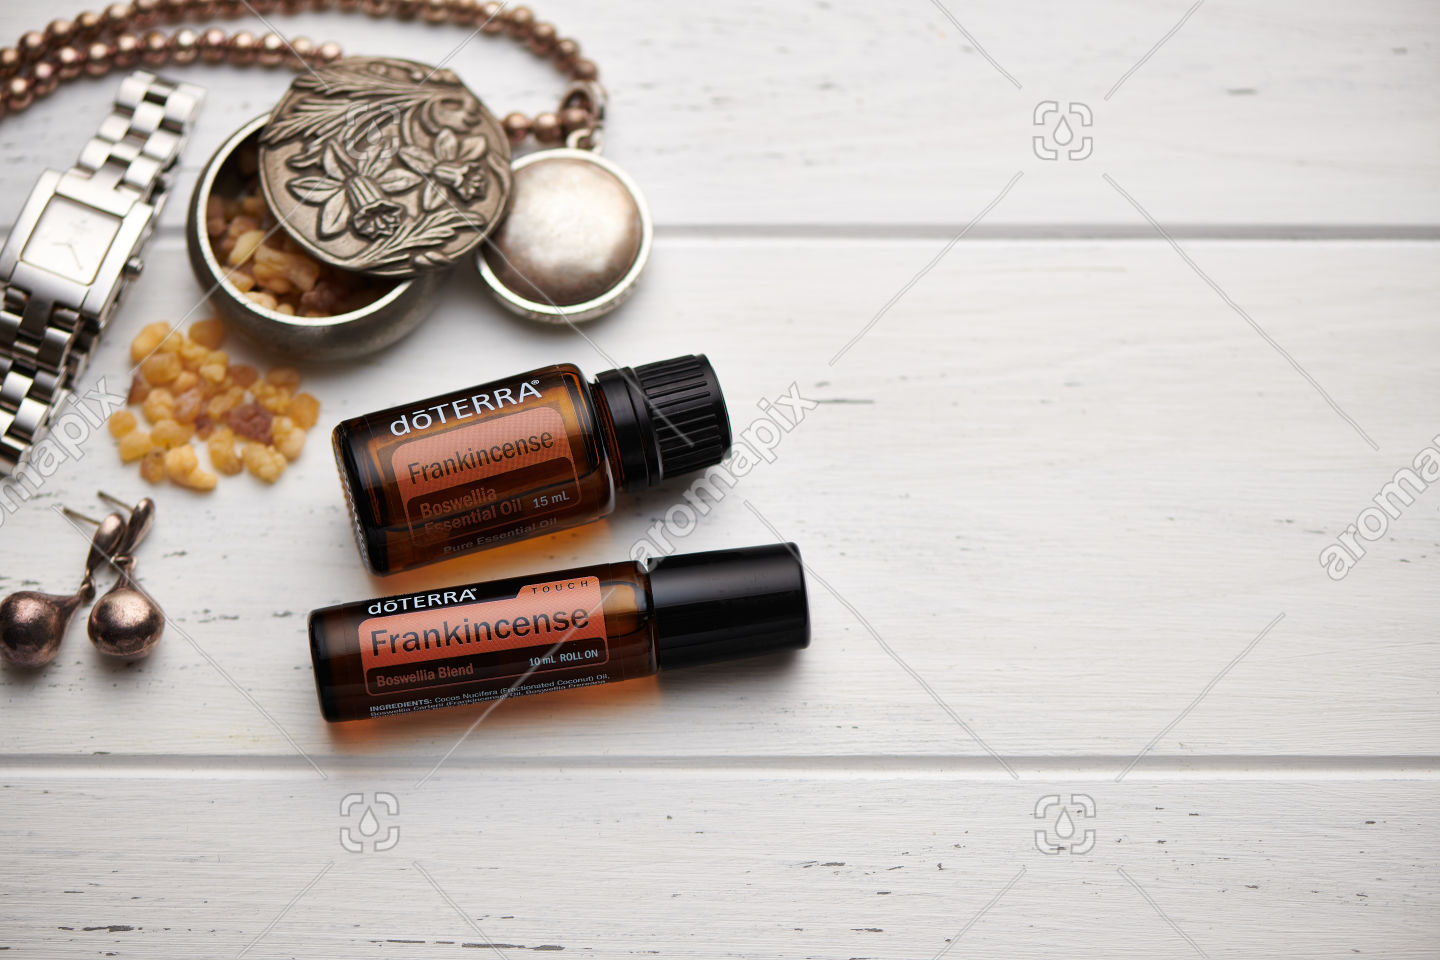 doTERRA Frankincense and Frankincense Touch on rustic background